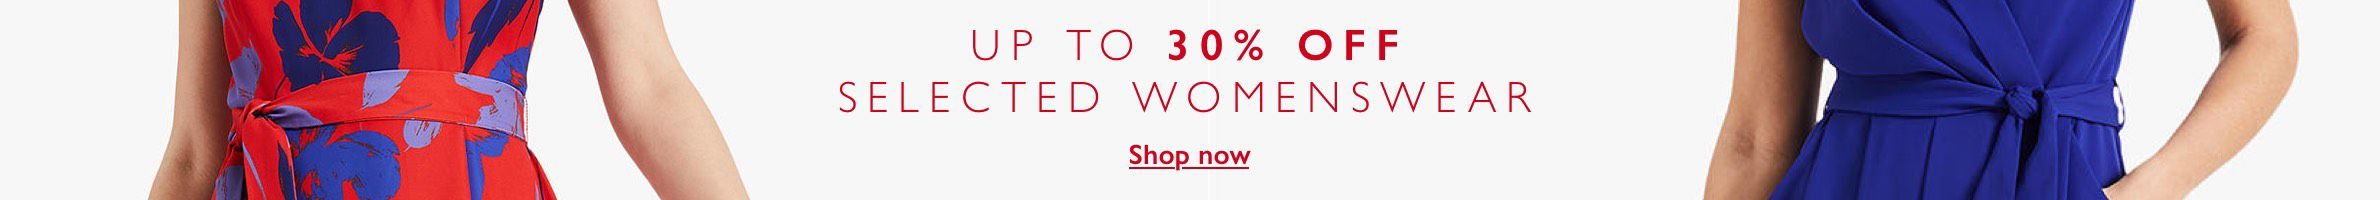 up to 30% off selected Womenswear